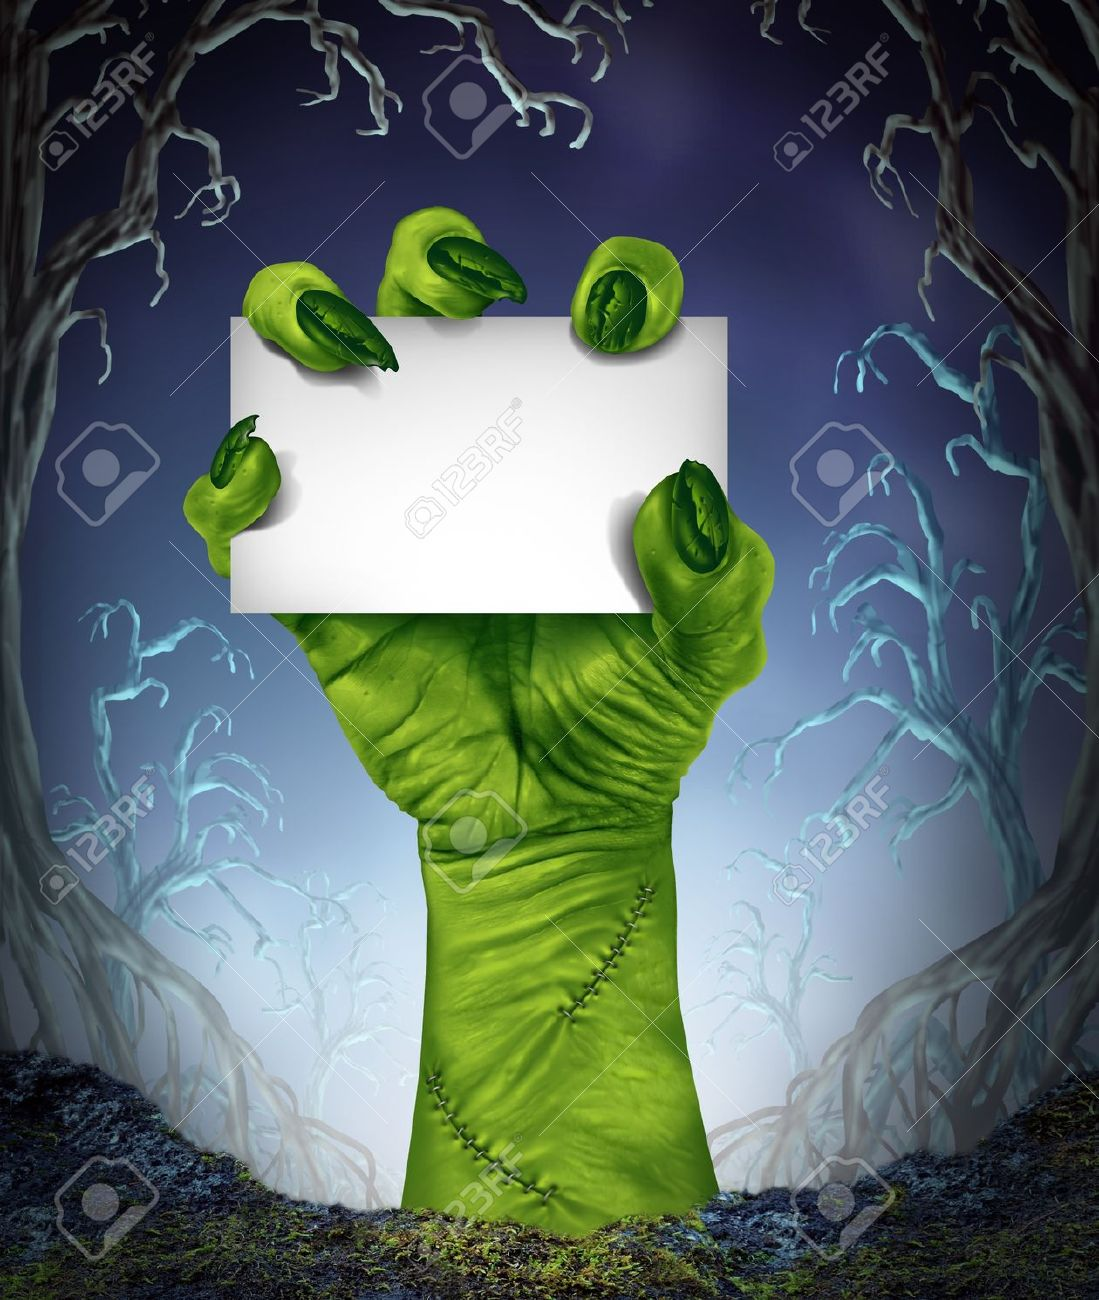 Stock Photo   Zombie Rising Hand Holding A Blank Sign Card As A Spooky  Halloween Or Scary Symbol With Textured Green Skin And Monster Fingers With  Stitches ...